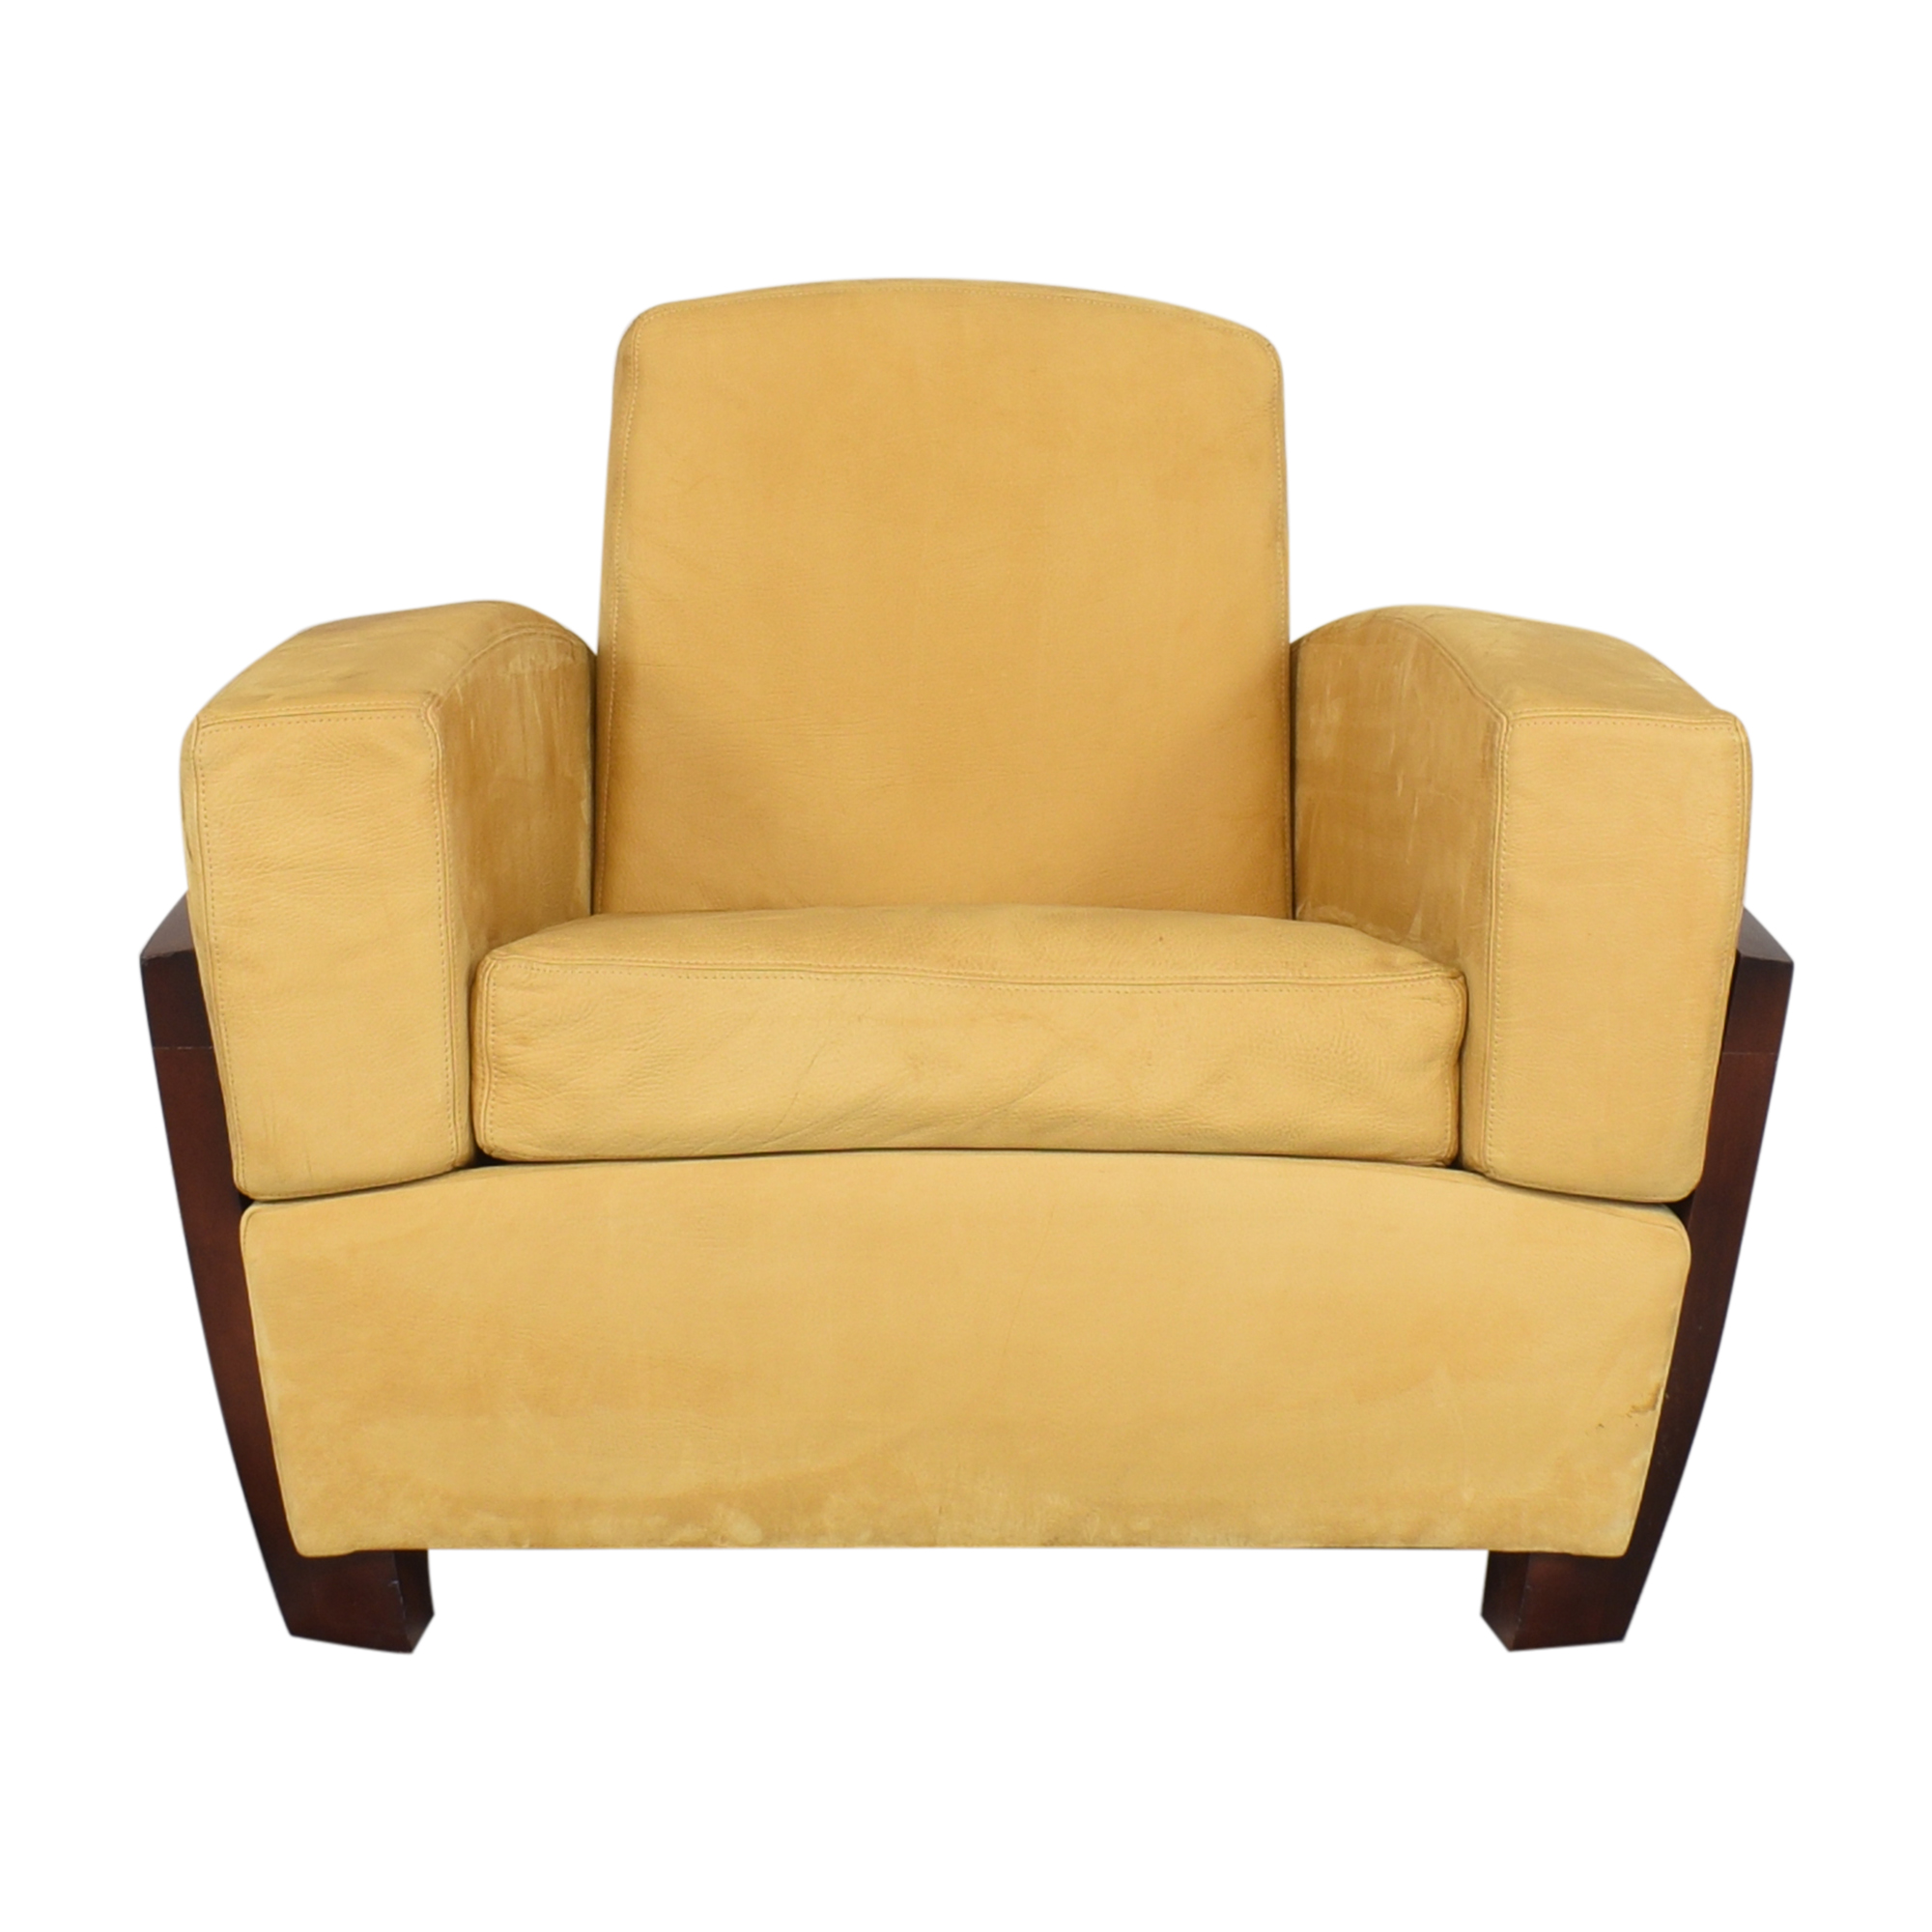 West Avenue Furniture Accent Armchair nj